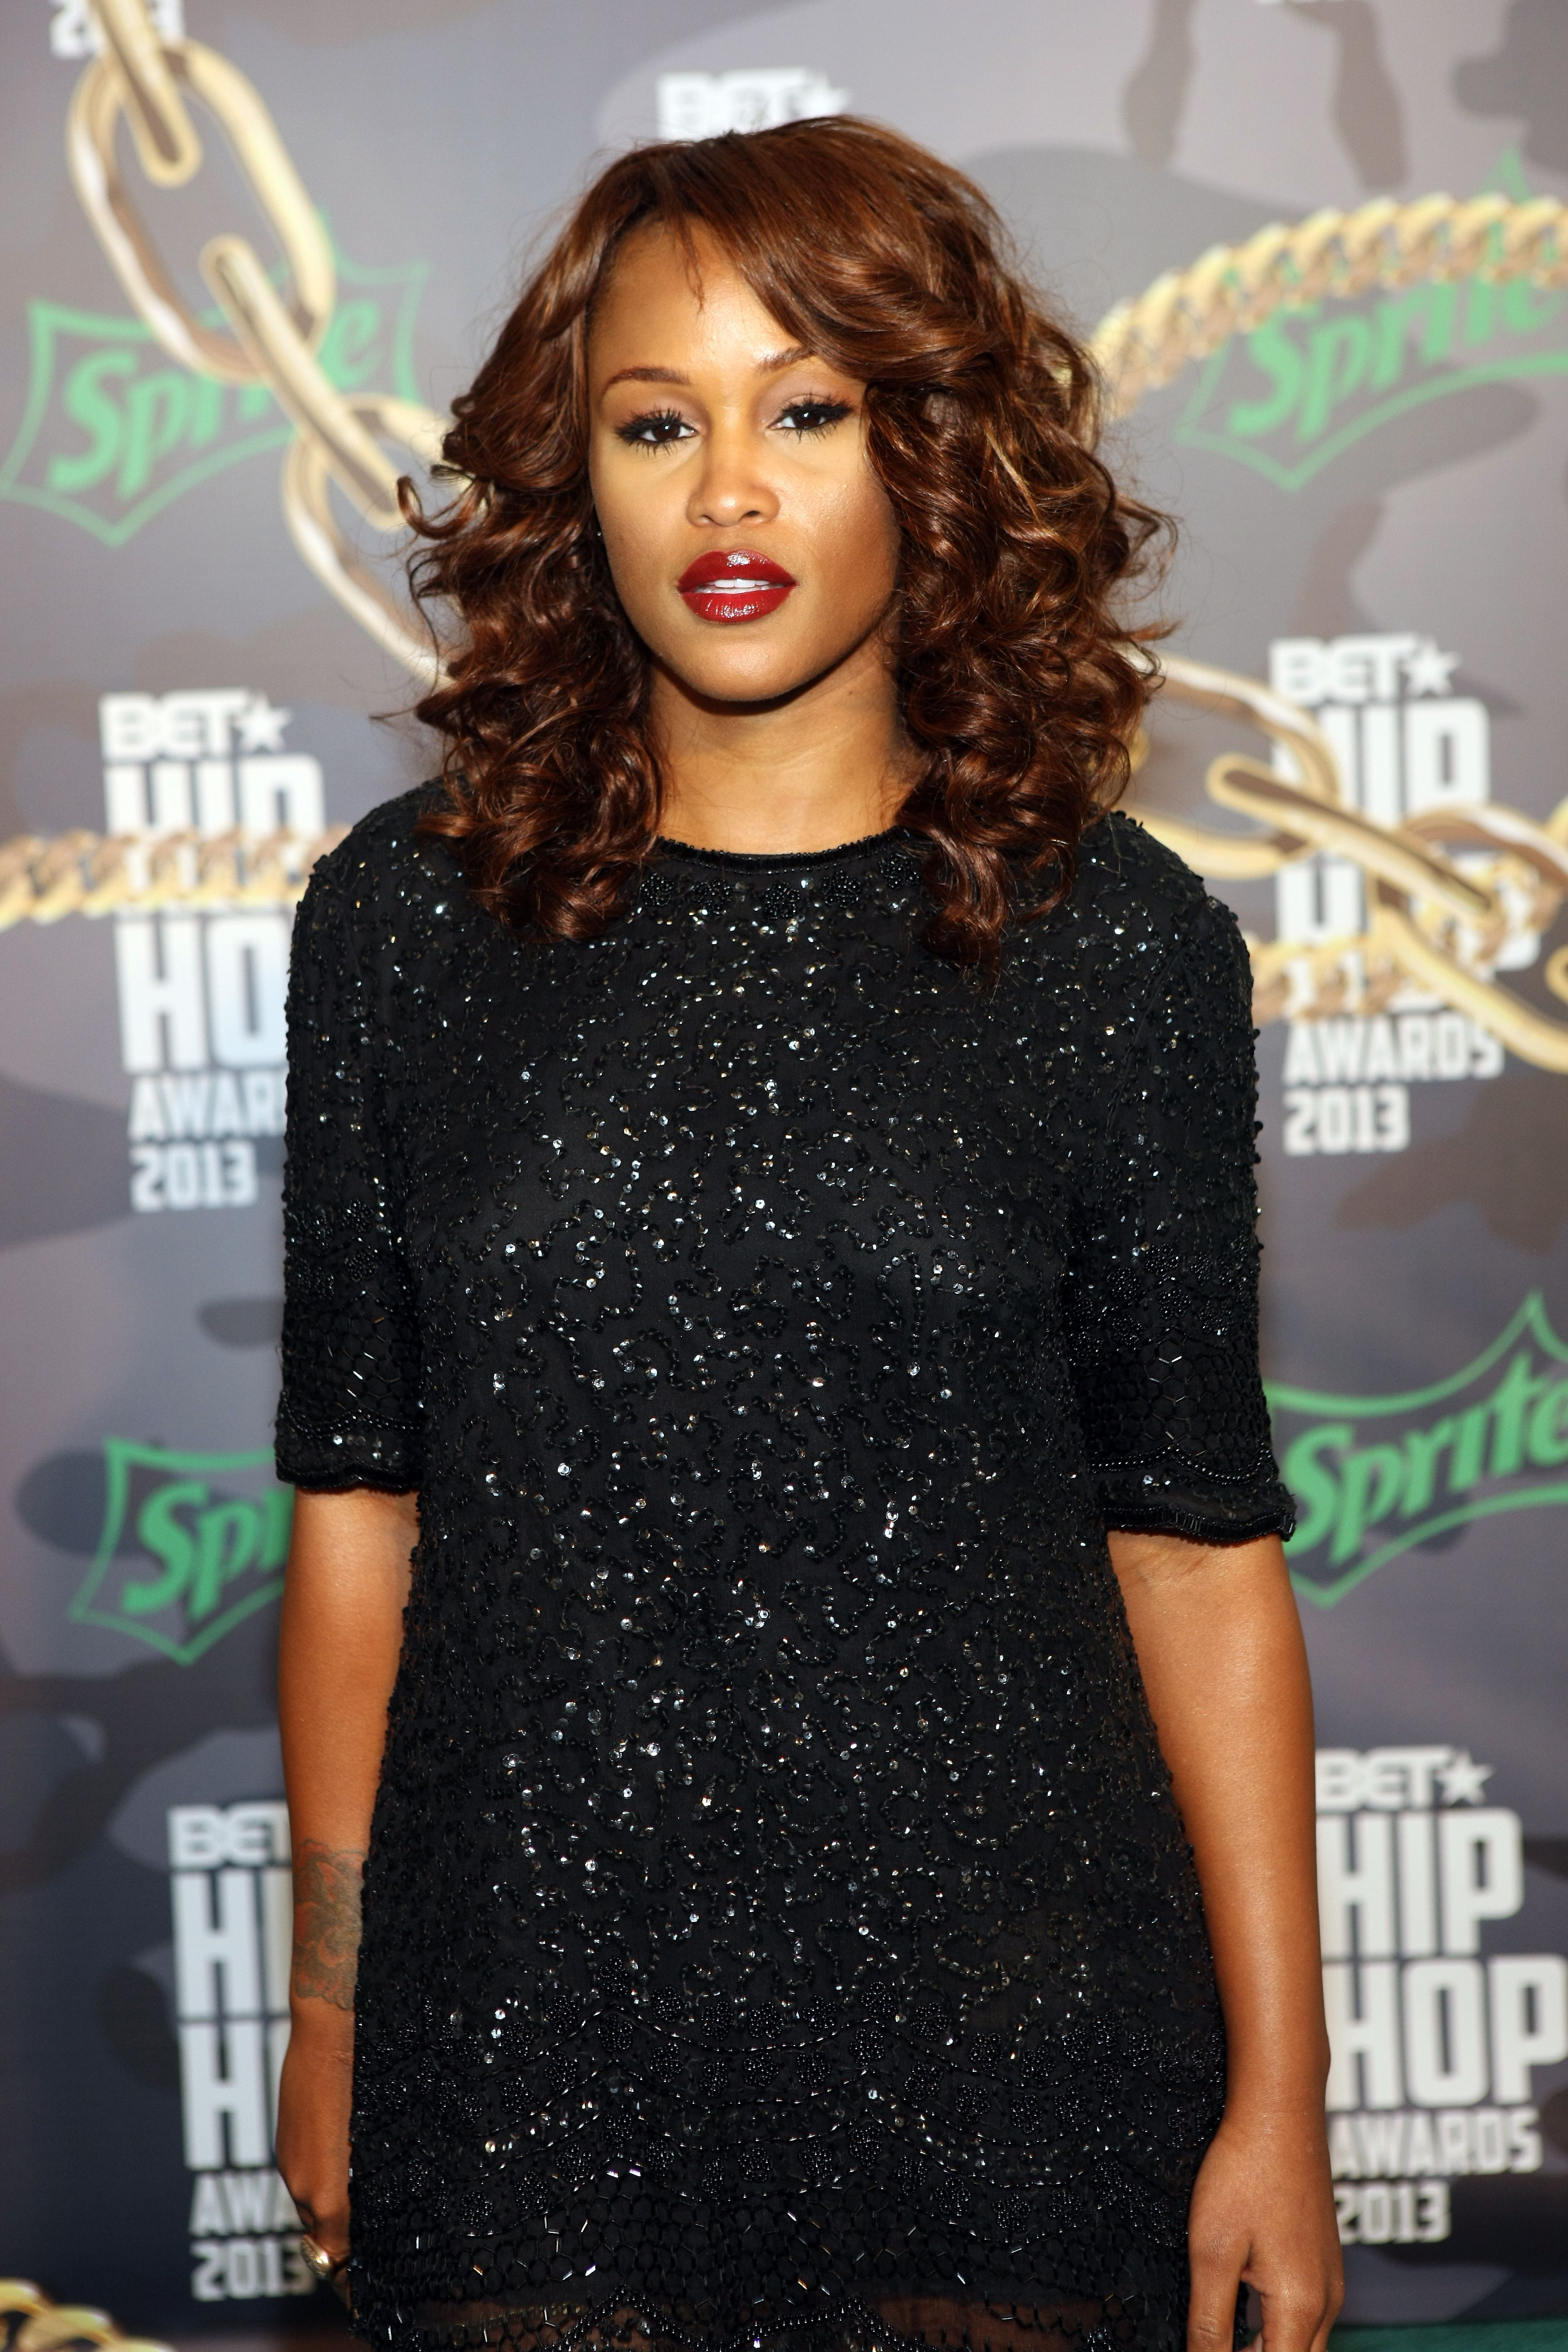 Eve during the BET Hip Hop Awards on September 28, 2013 in Atlanta, Georgia. | Source: Getty Images